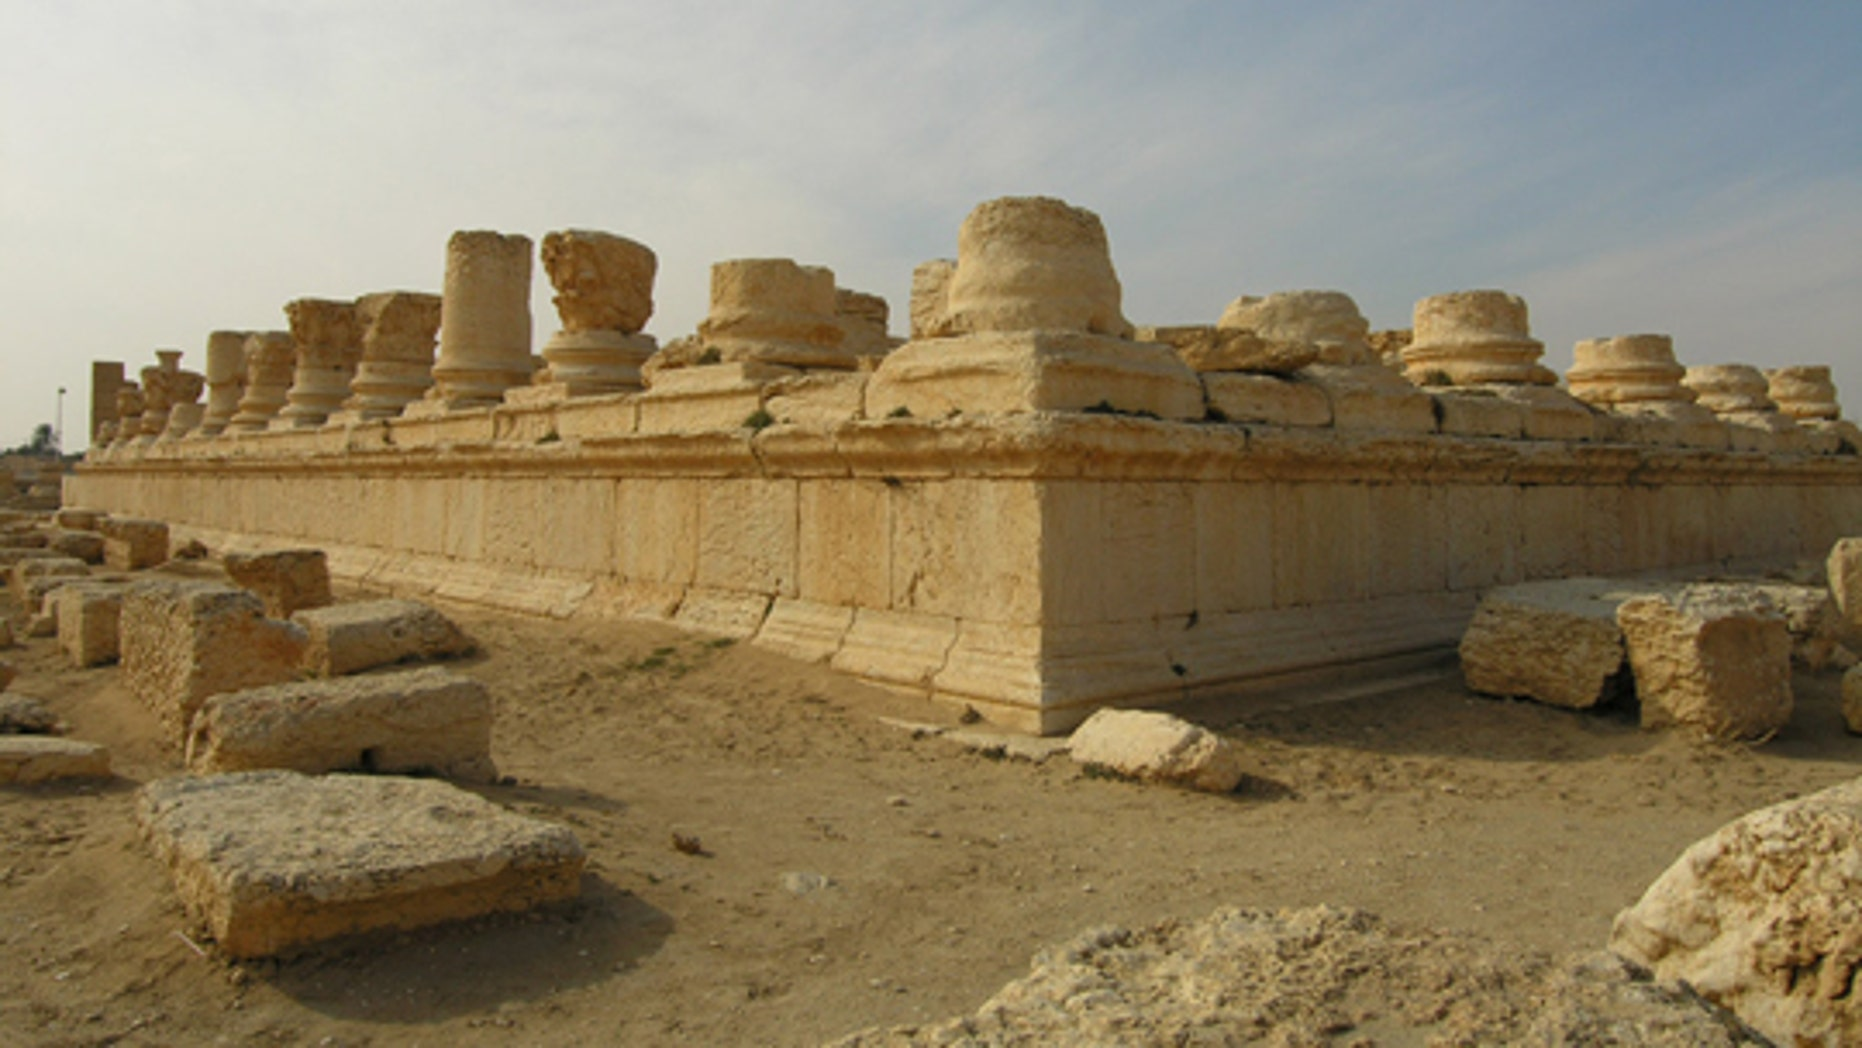 This undated photo shows part of the archaeological site at Palmyra in Syria (UNESCO)